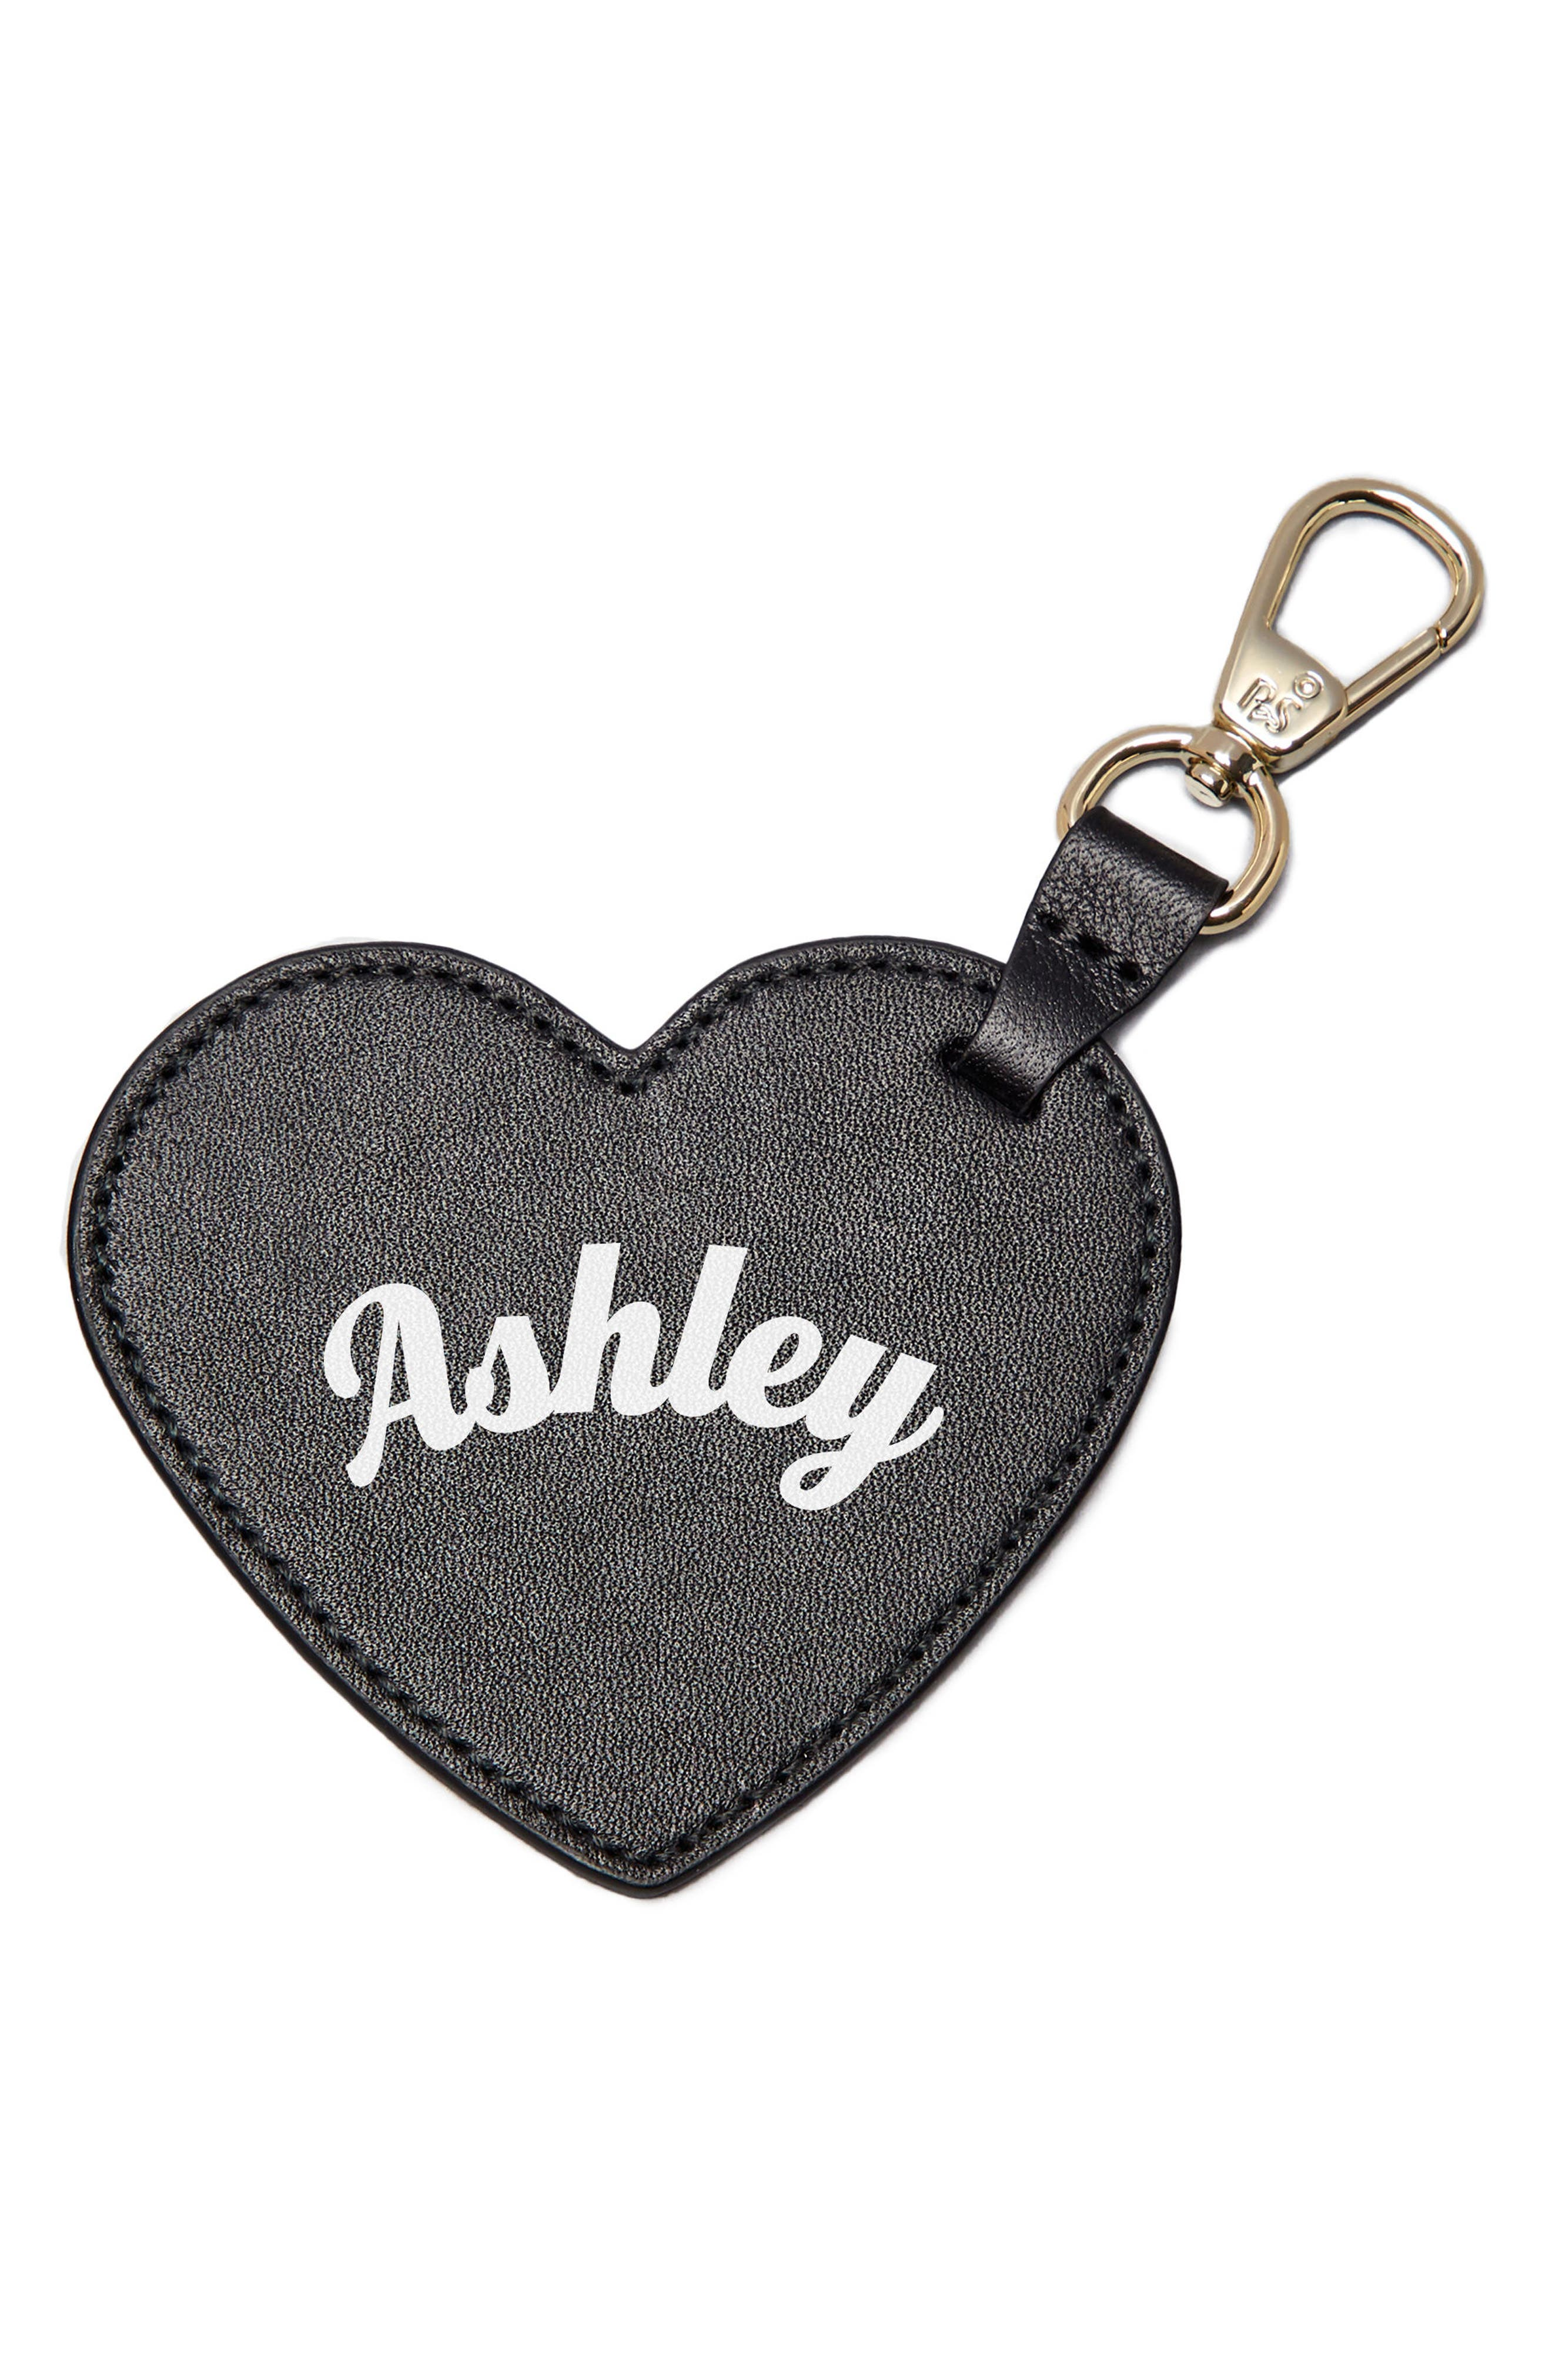 POP & SUKI Smaller Heart Personalized Bag Charm, Main, color, 001